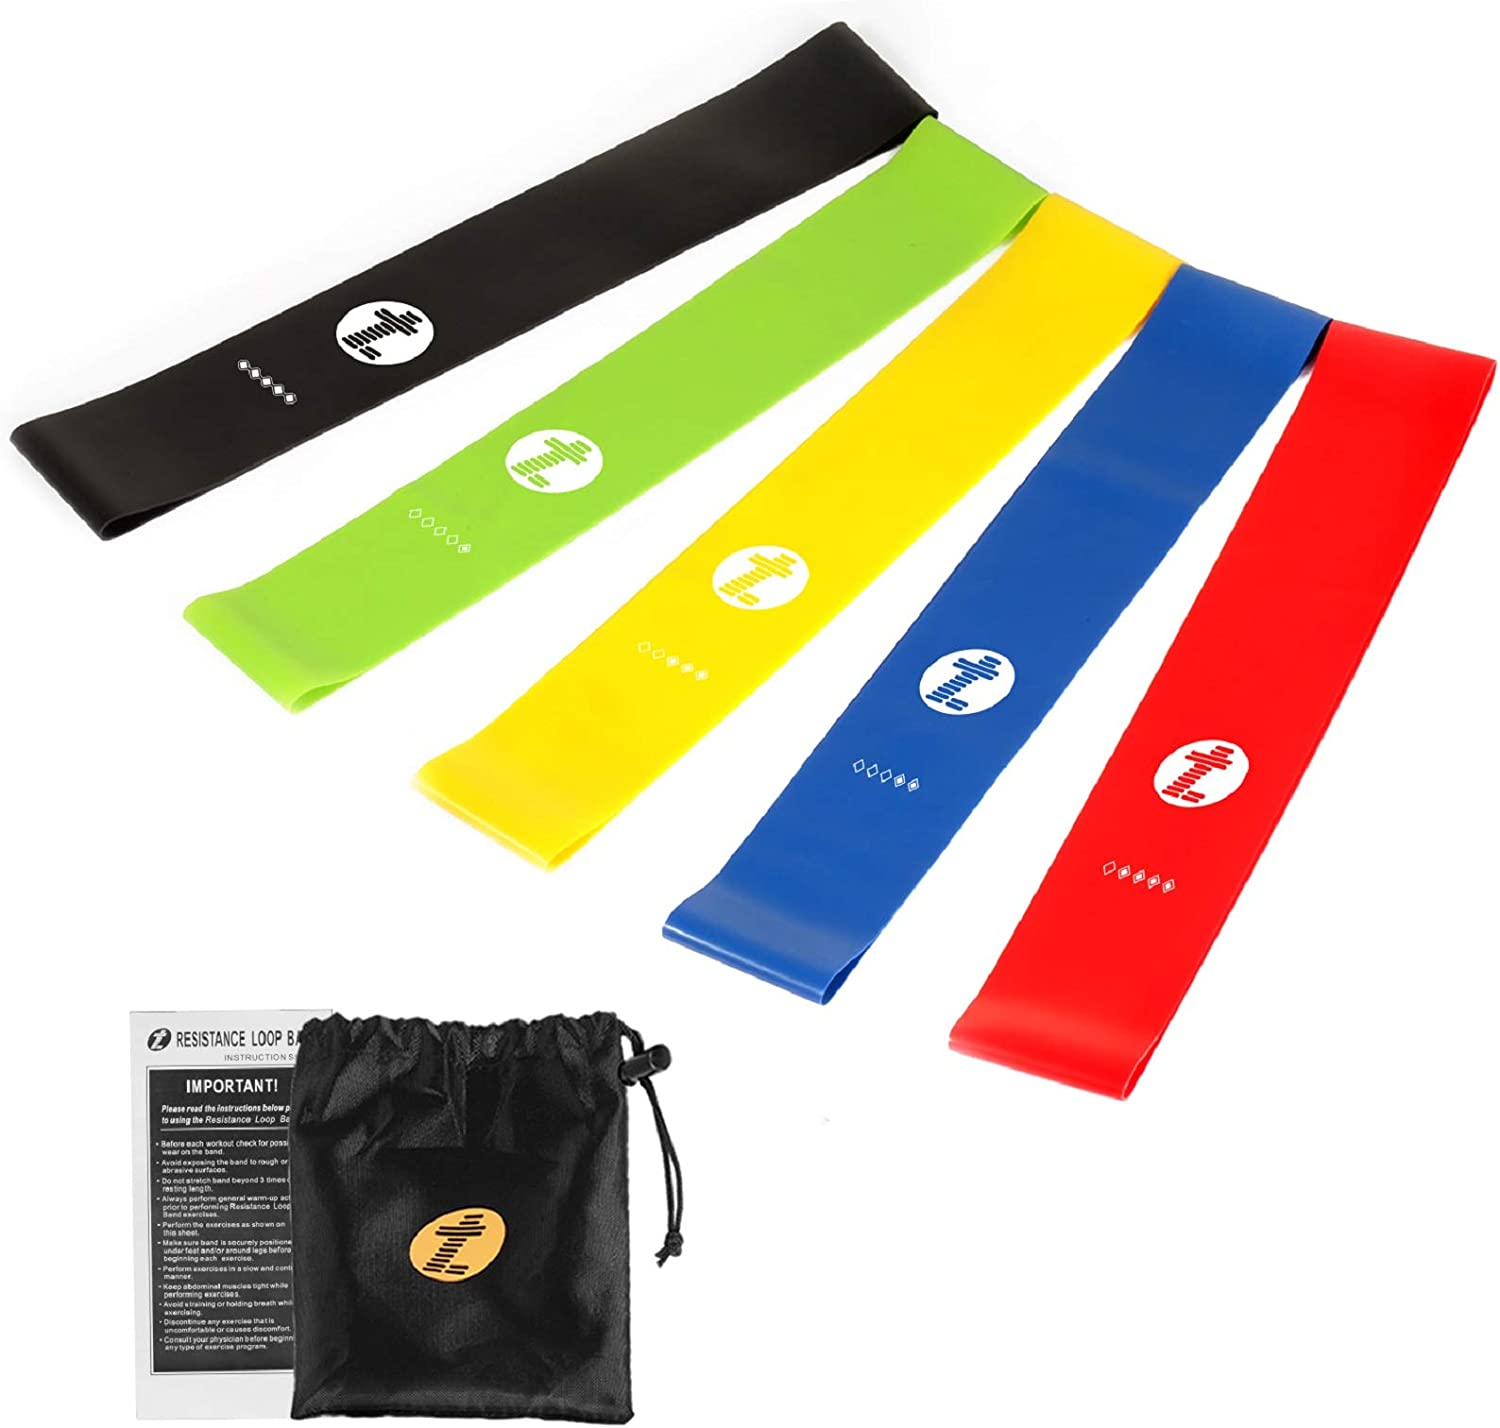 Etoplus Resistance Bands - Set of 5 Exercise Bands, Resistance Loops Workout Bands for Physical Therapy, Legs, Butt, Home Fitness, Yoga, Stretching with Instruction Manual & Carry Bag